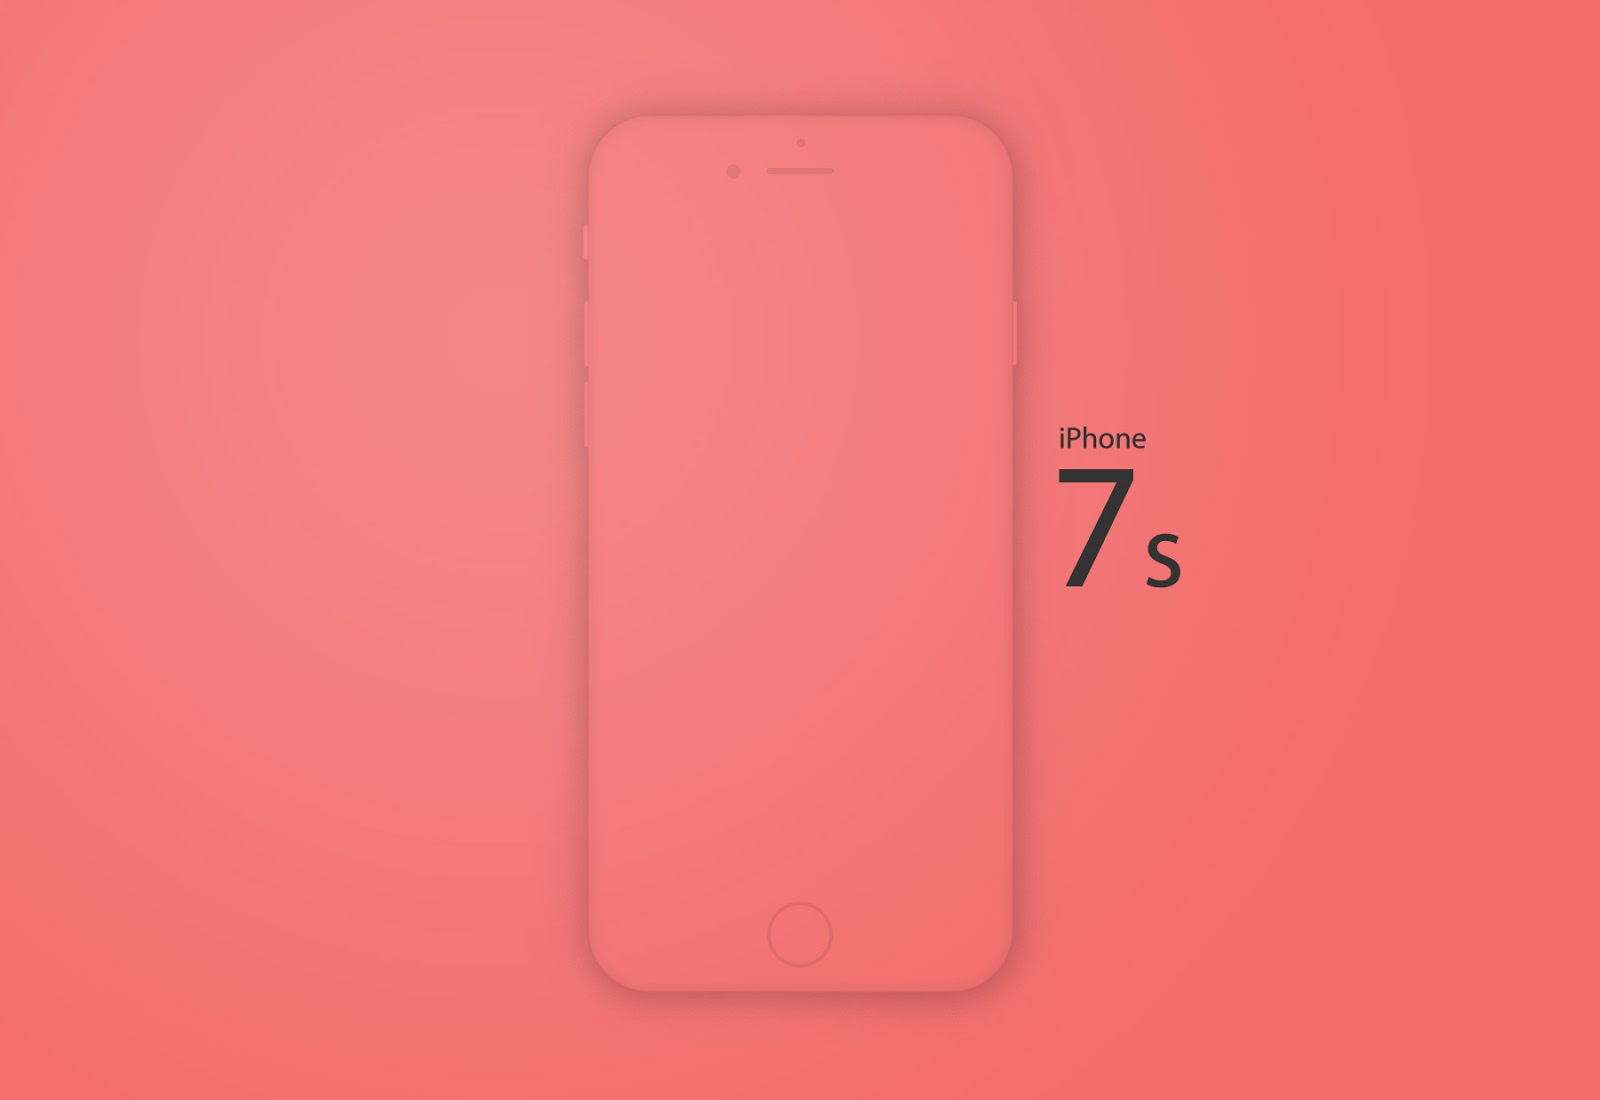 rumor-said-that-apple-will-launch-iphone-7-s-next-year-with-small-change